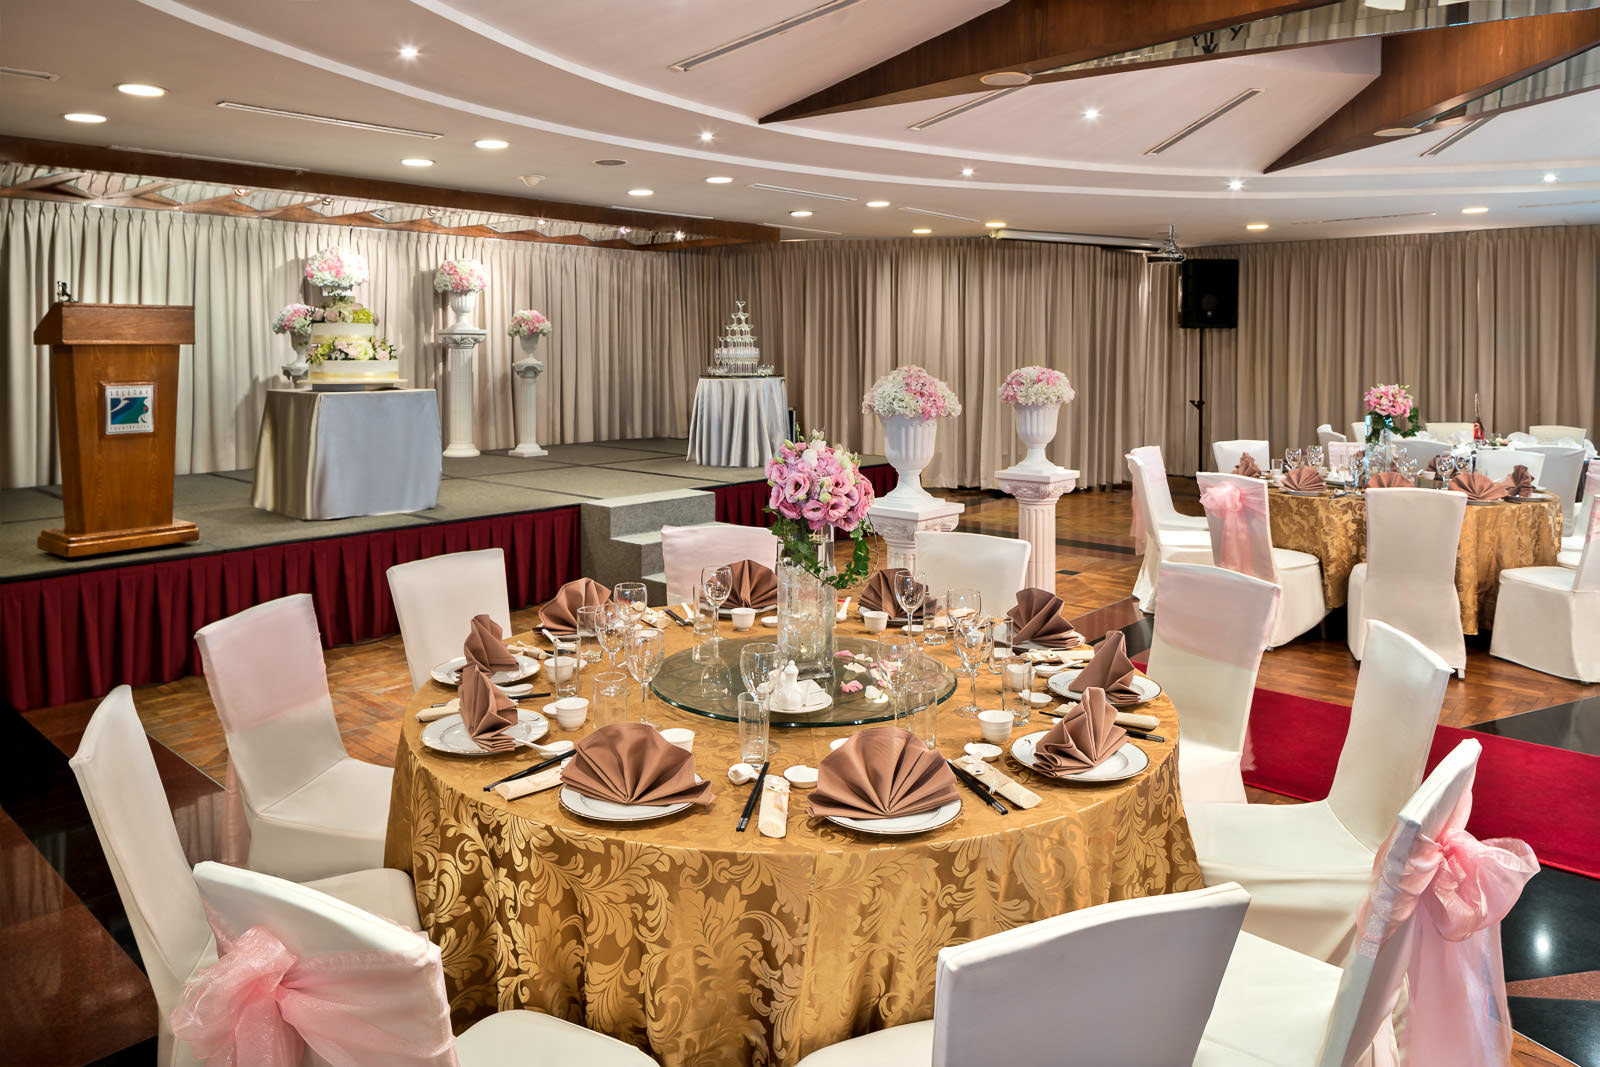 Interior photography of the seletar country club in singapore behind a wedding table setup in a ballroom